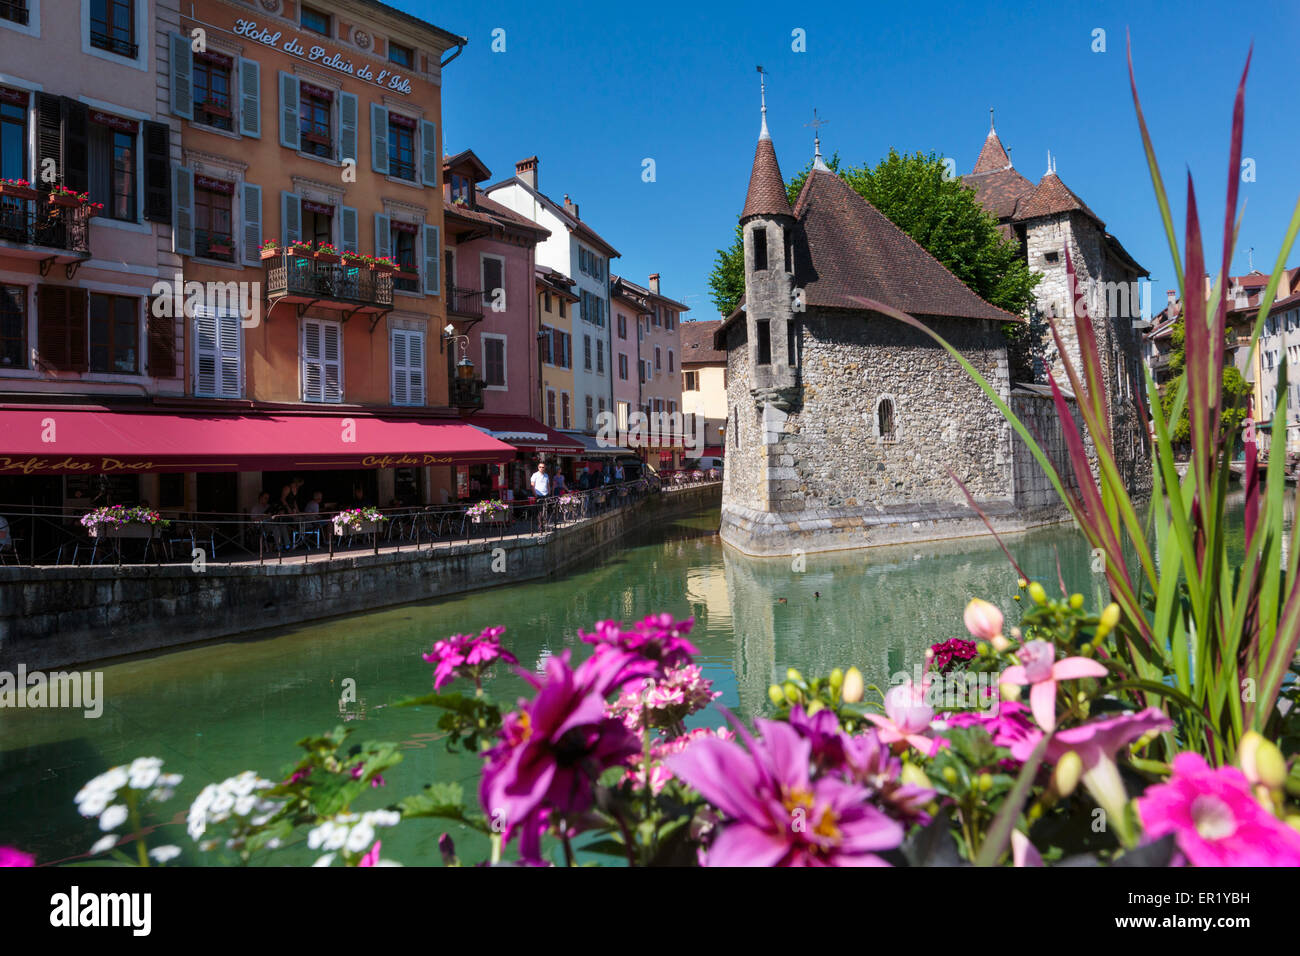 Annecy, Haute-Savoie department, Rhone-Alpes, France.  Palais de l'Isle in the middle of the Thiou river. - Stock Image